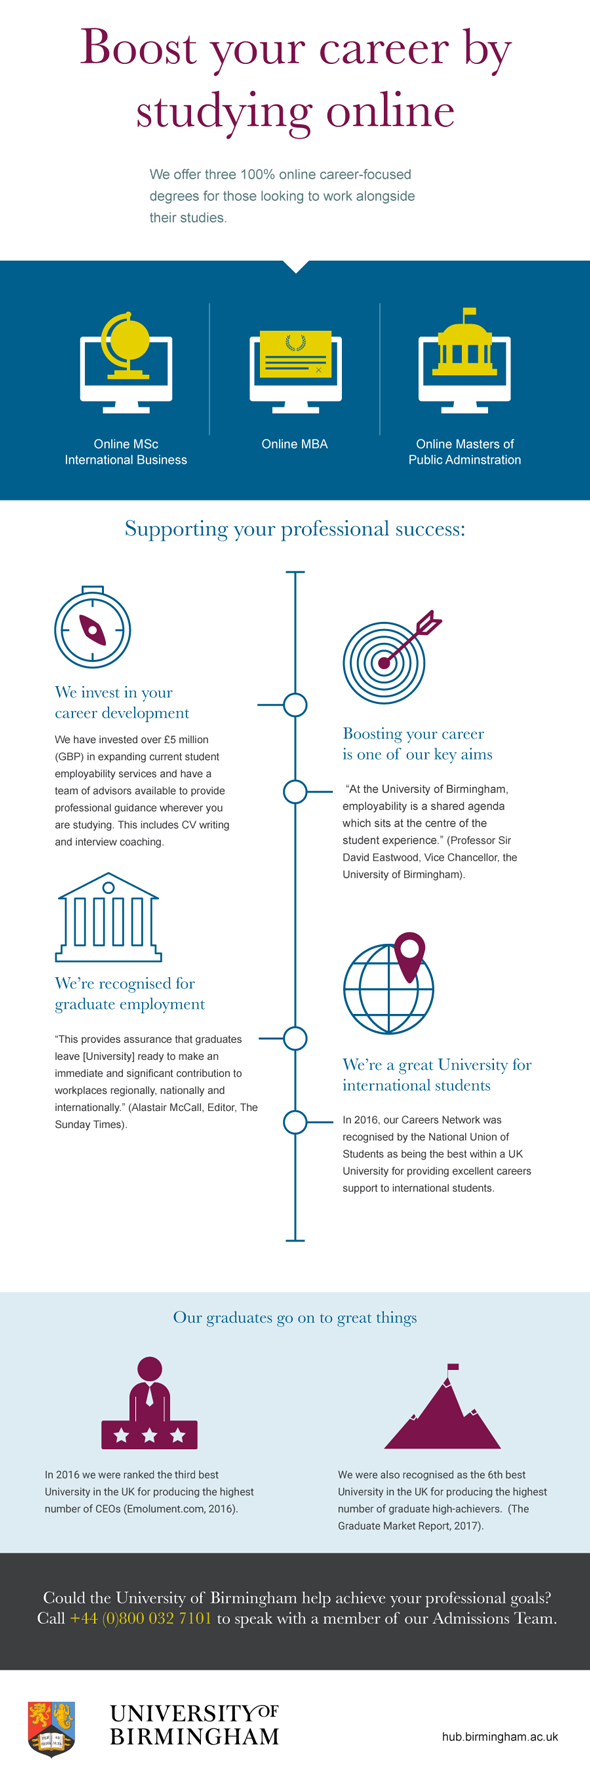 University of Birmingham boost your career by studying online infographic.